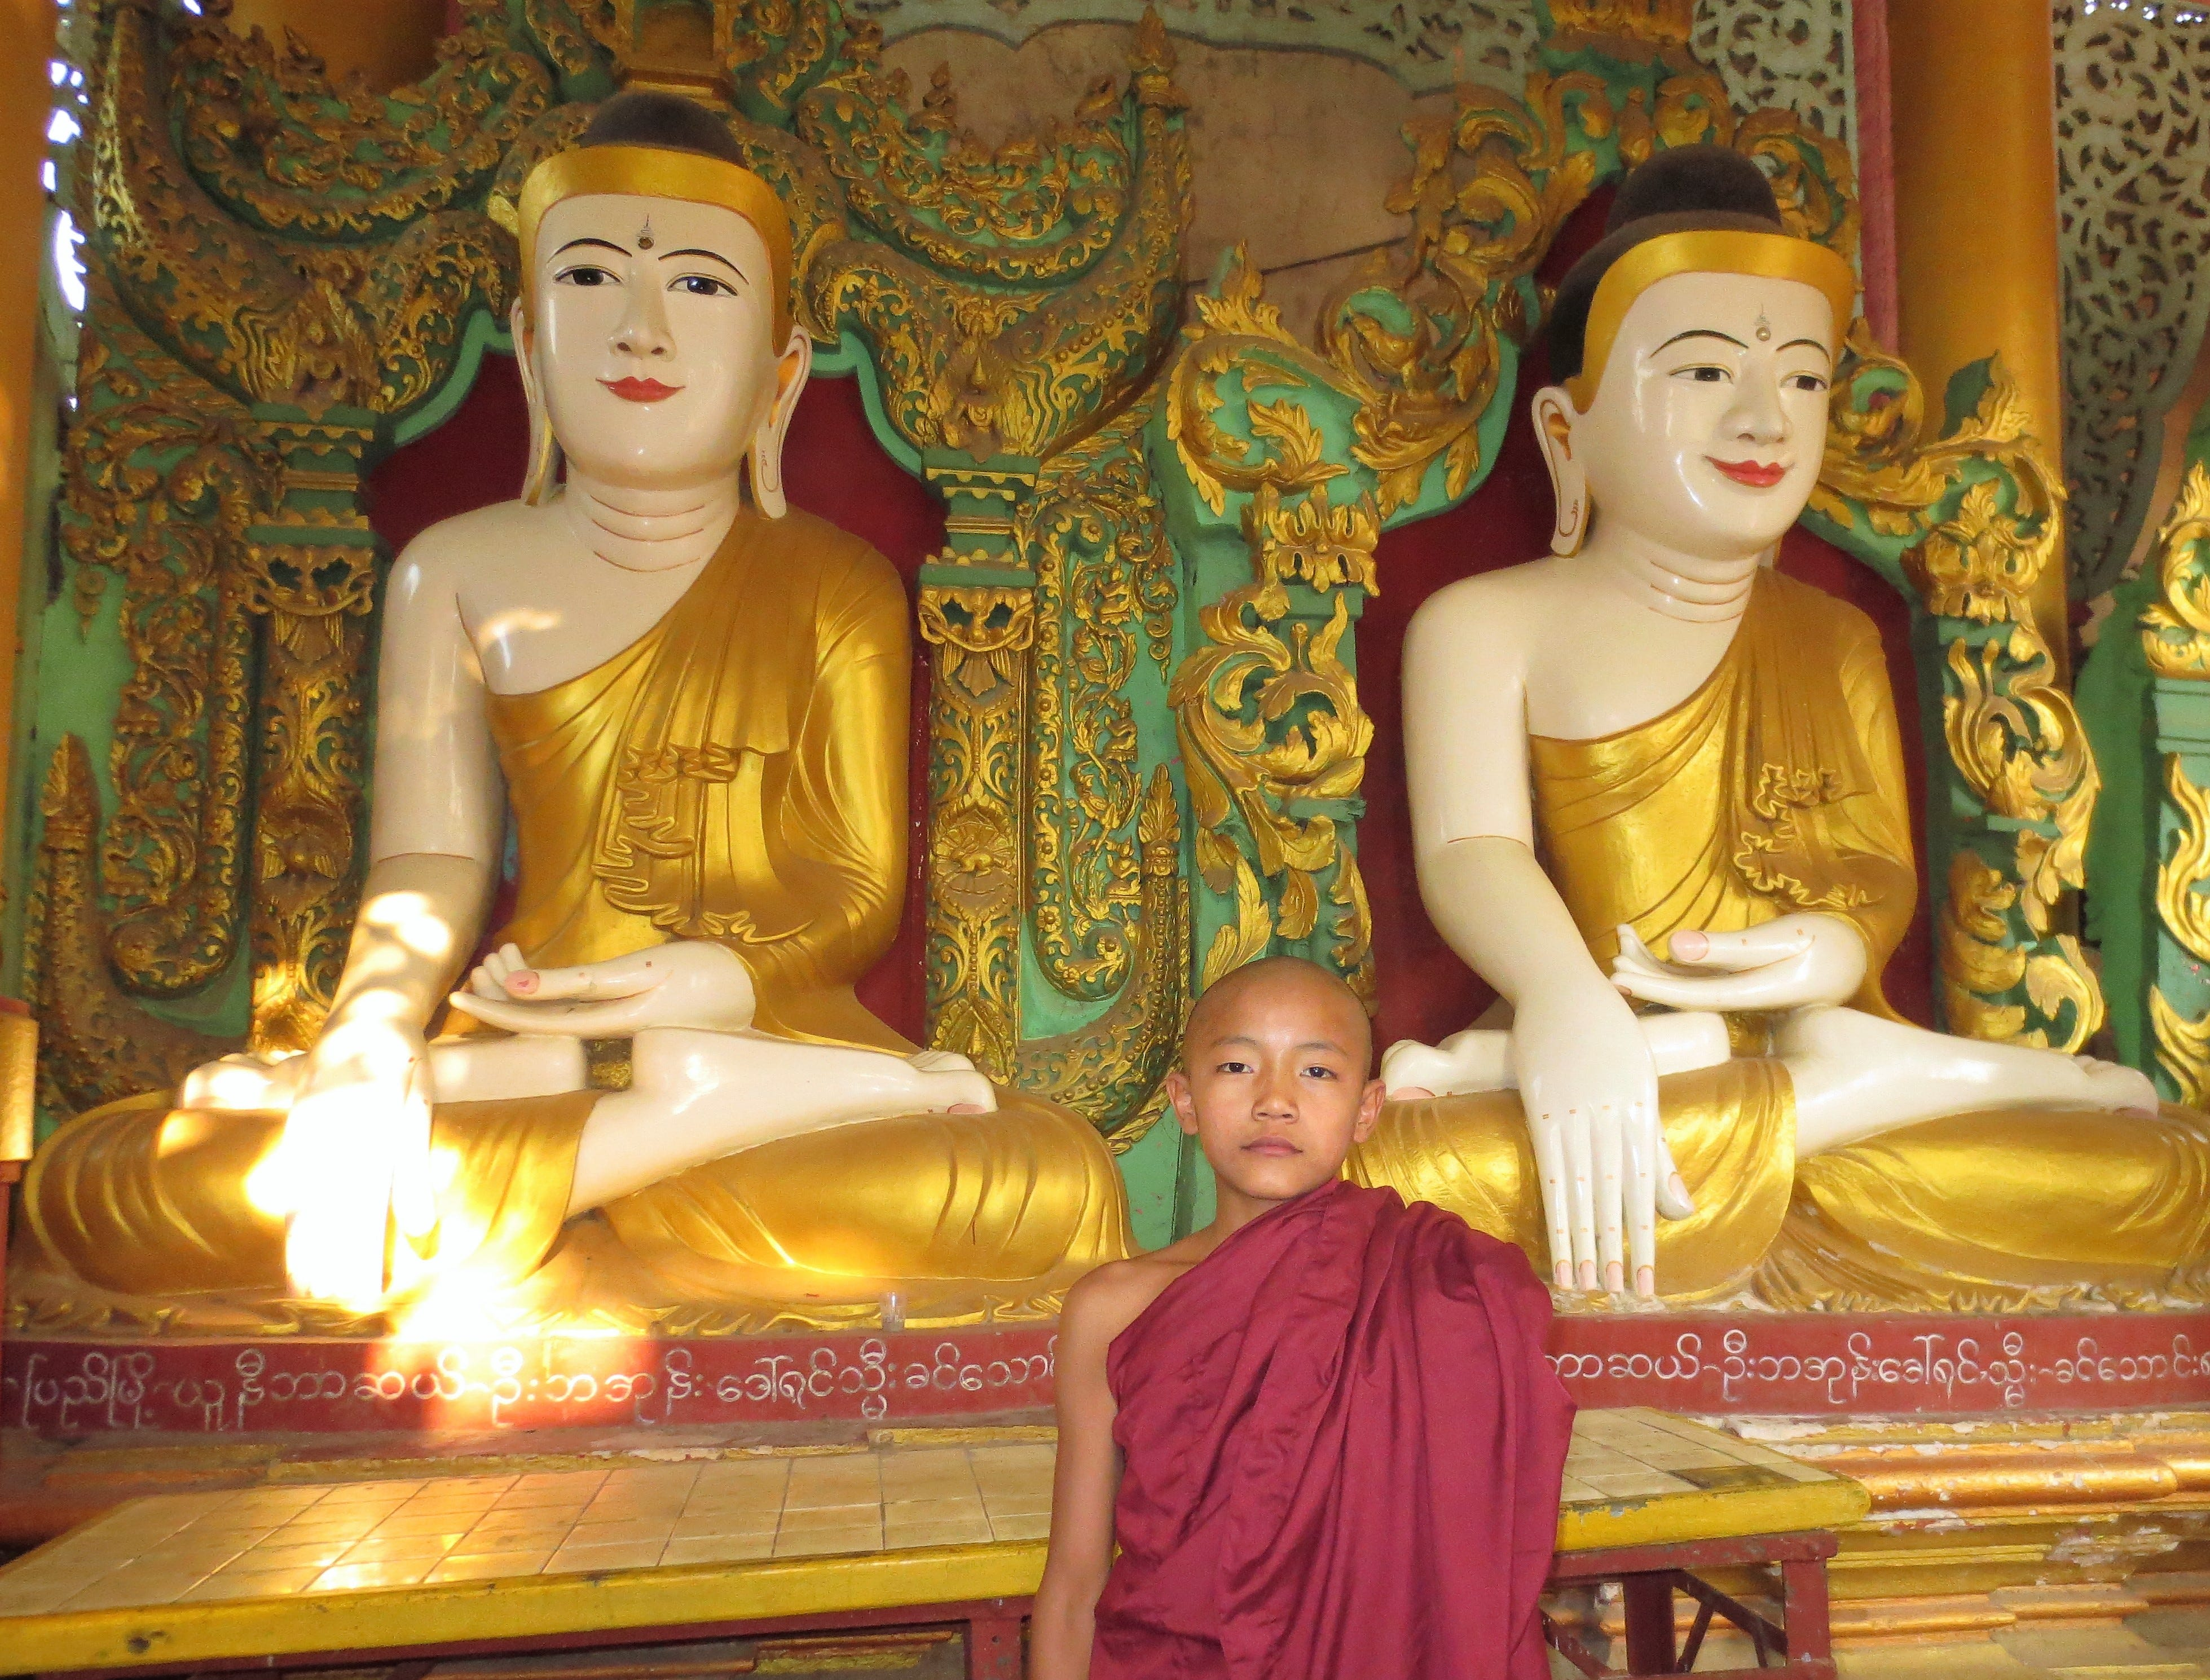 A novice monk at the Shwesandaw Pagoda complex in Pyay, Myanmar.